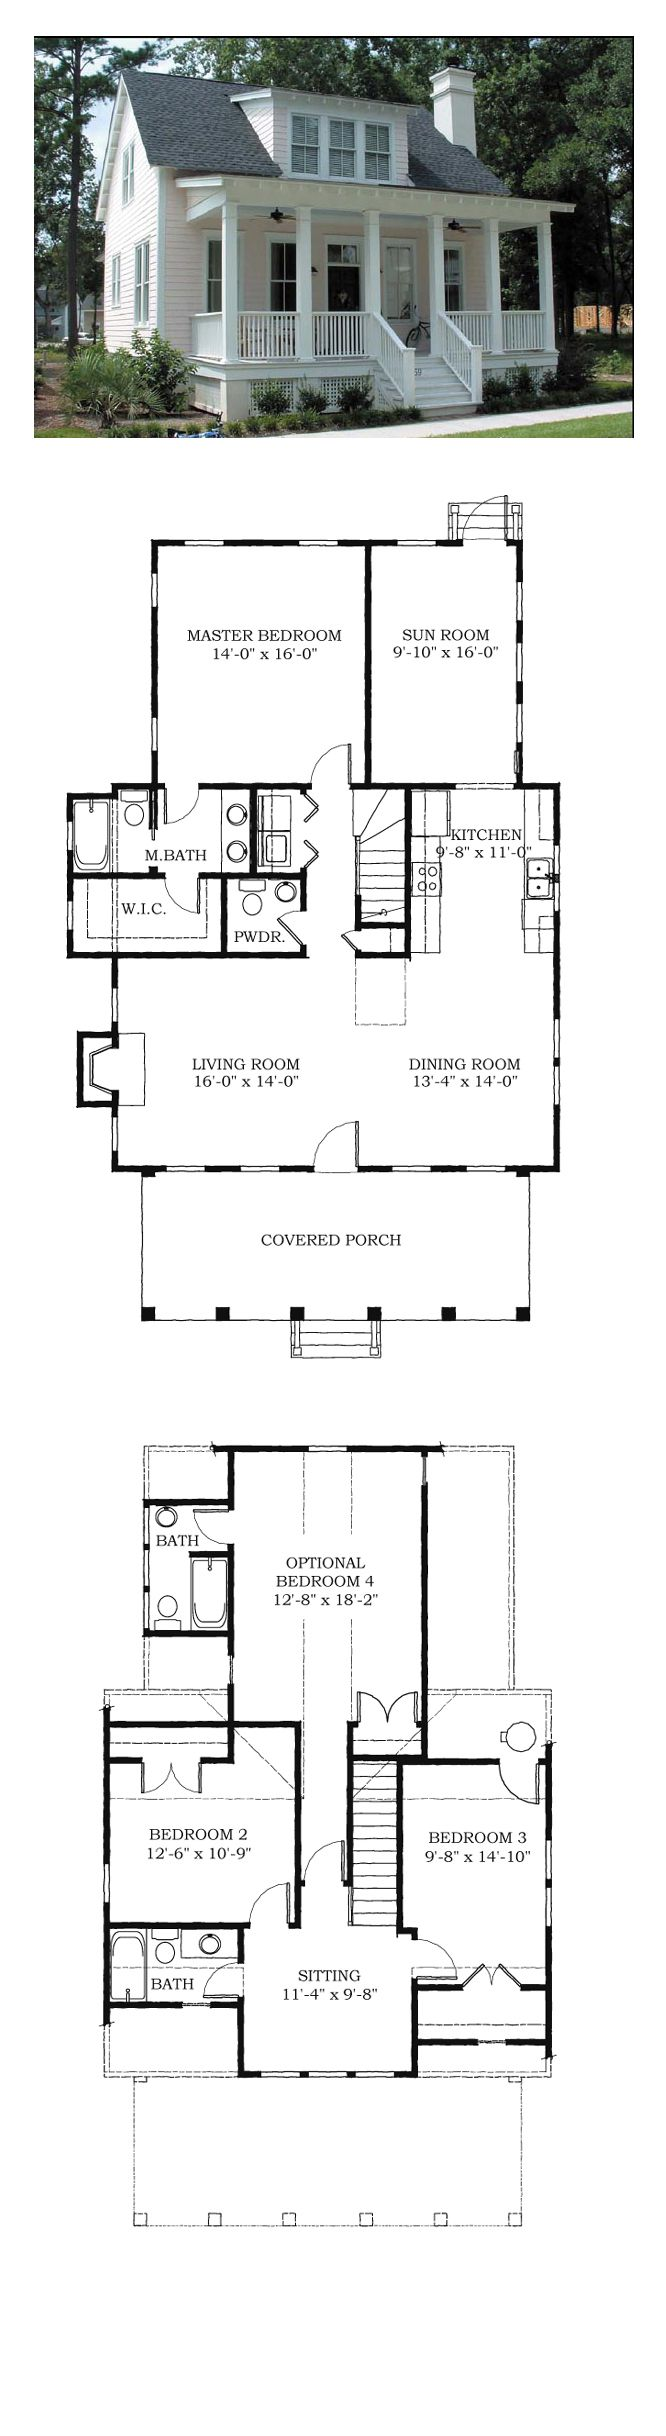 Best 25  4 bedroom house plans ideas on Pinterest   House plans  Country house  plans and Craftsman home plans. Best 25  4 bedroom house plans ideas on Pinterest   House plans